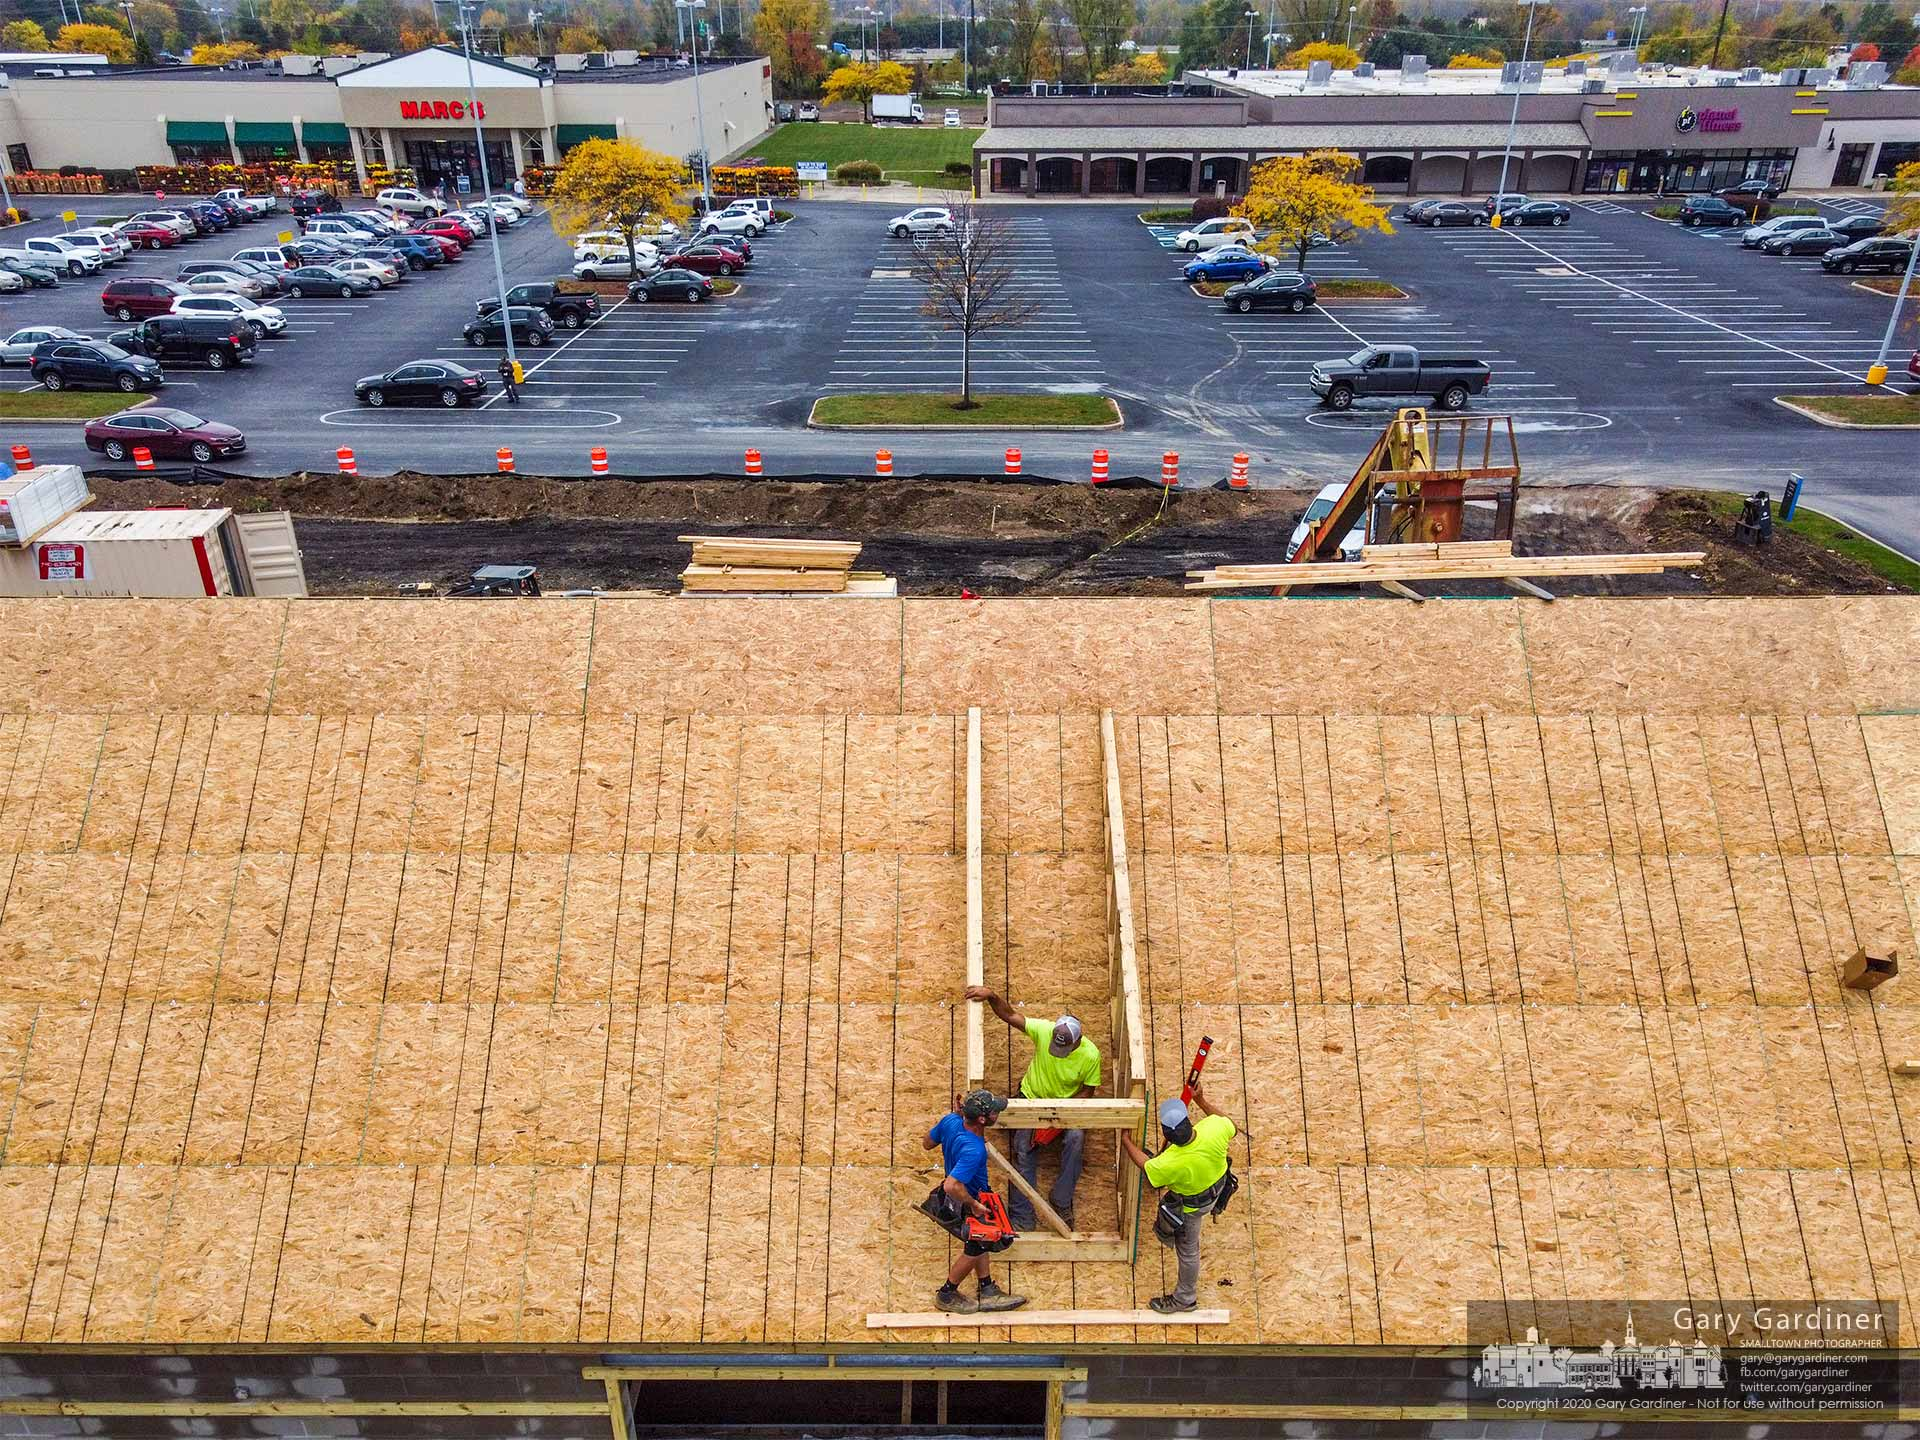 Carpenters build the frame for a dormer on the roof of the Moo Moo Car Wash under construction on Huber Village Boulevard in Westerville. My Final Photo for Oct. 21, 2020.